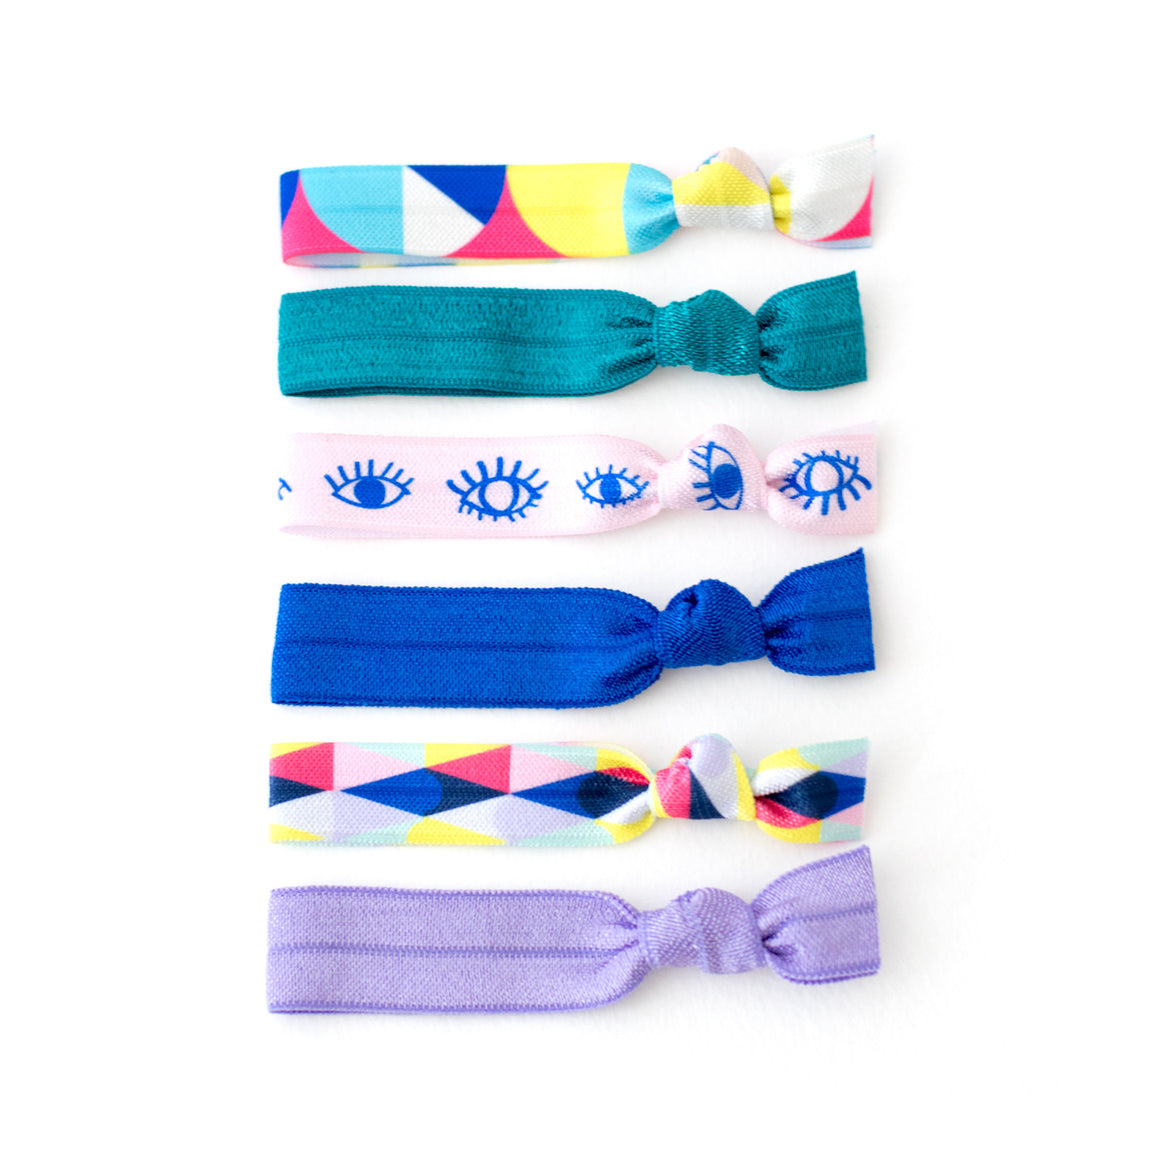 The Wink Hair Tie Package